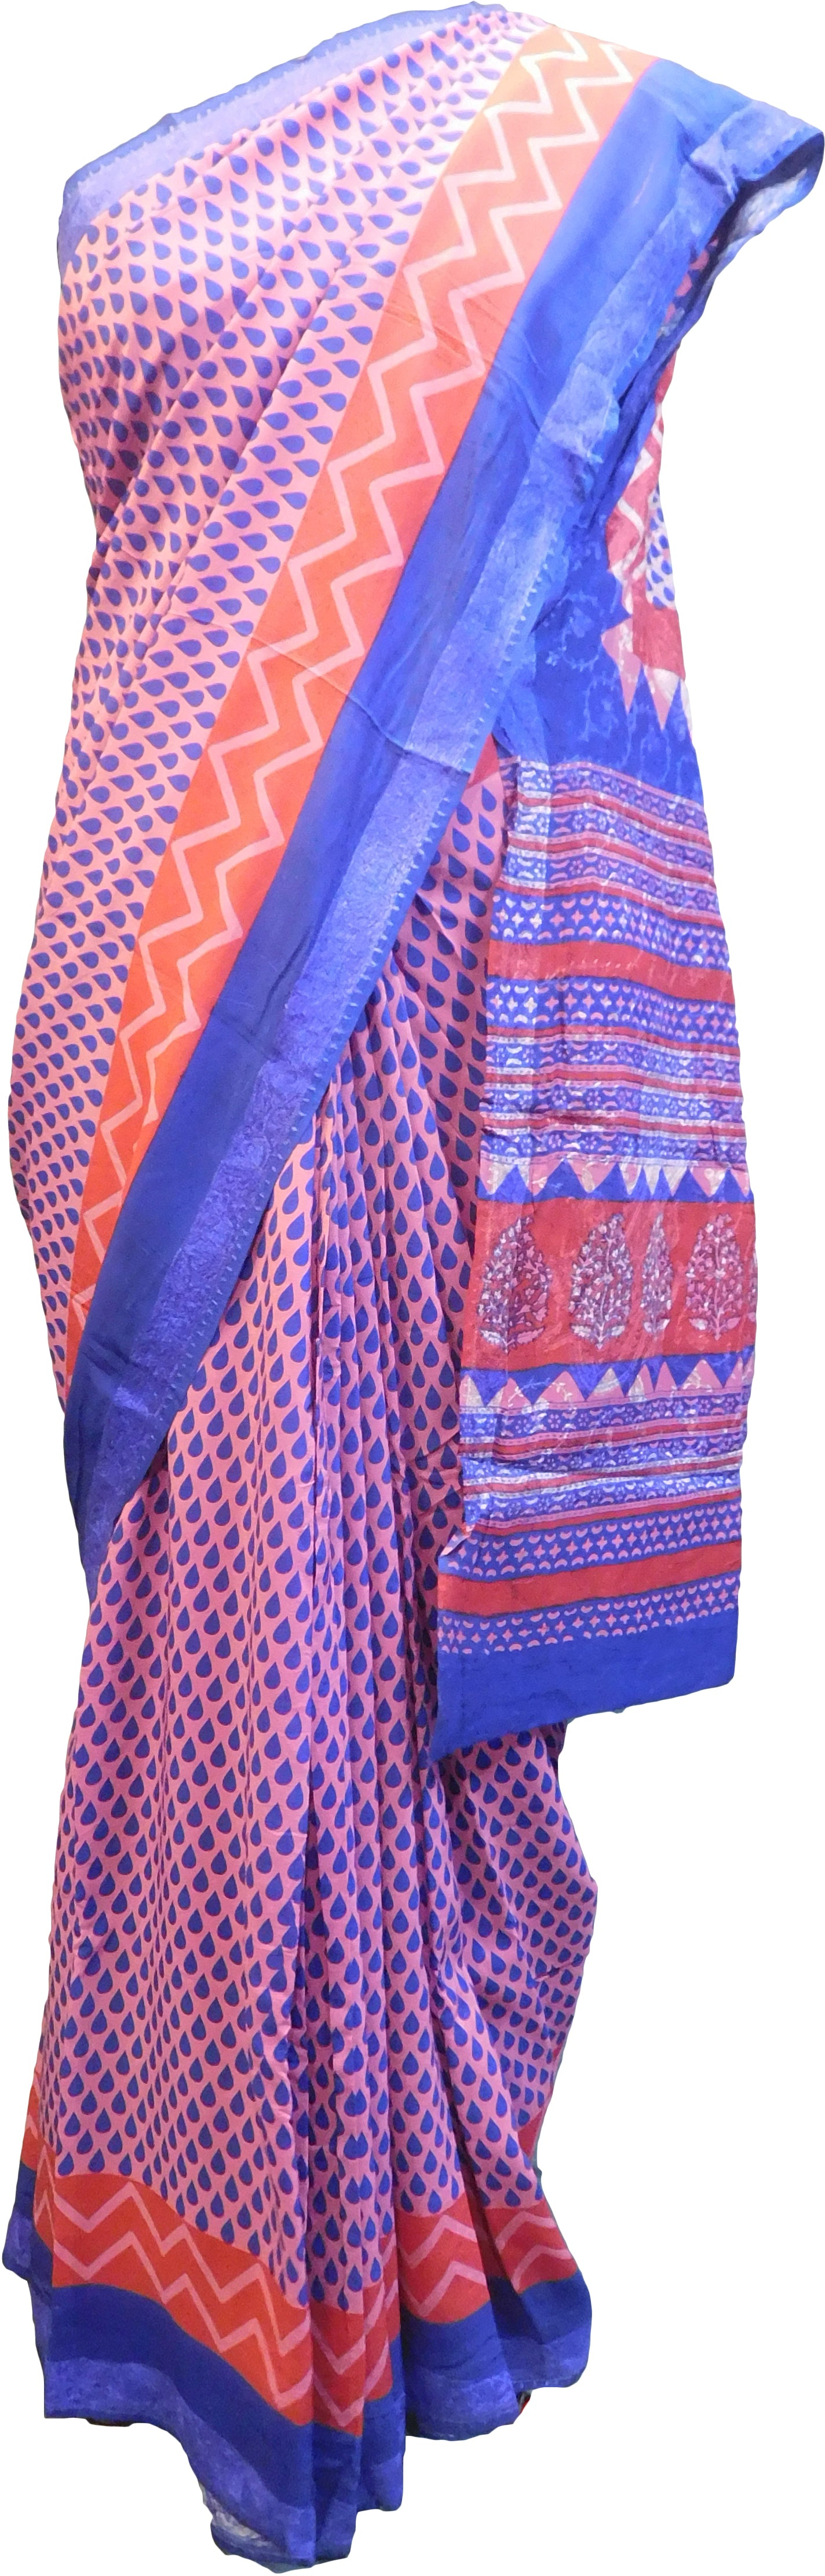 Multicolor Designer Wedding Partywear Pure Crepe Hand Brush Reprinted Kolkata Saree Sari RP269